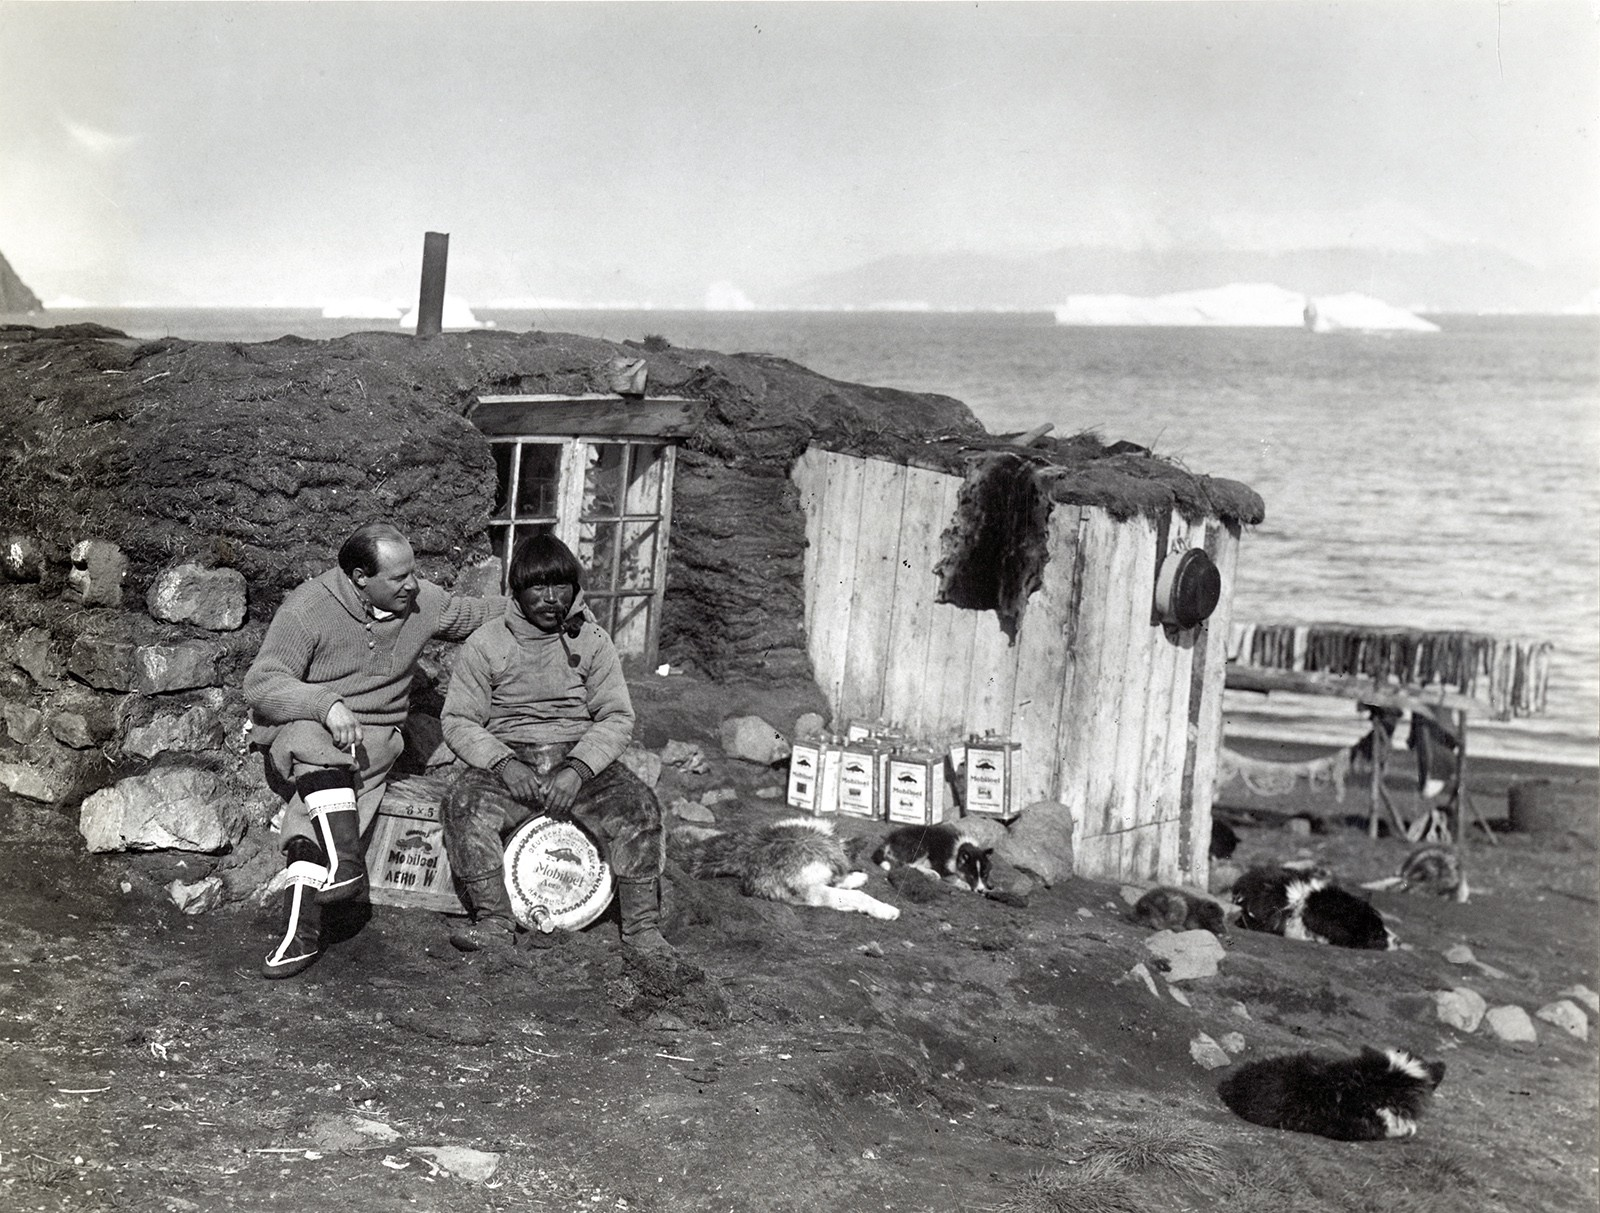 Grass hut. 1930s, Greenland. Photo: Plattsburgh State Art Museum, SUNY